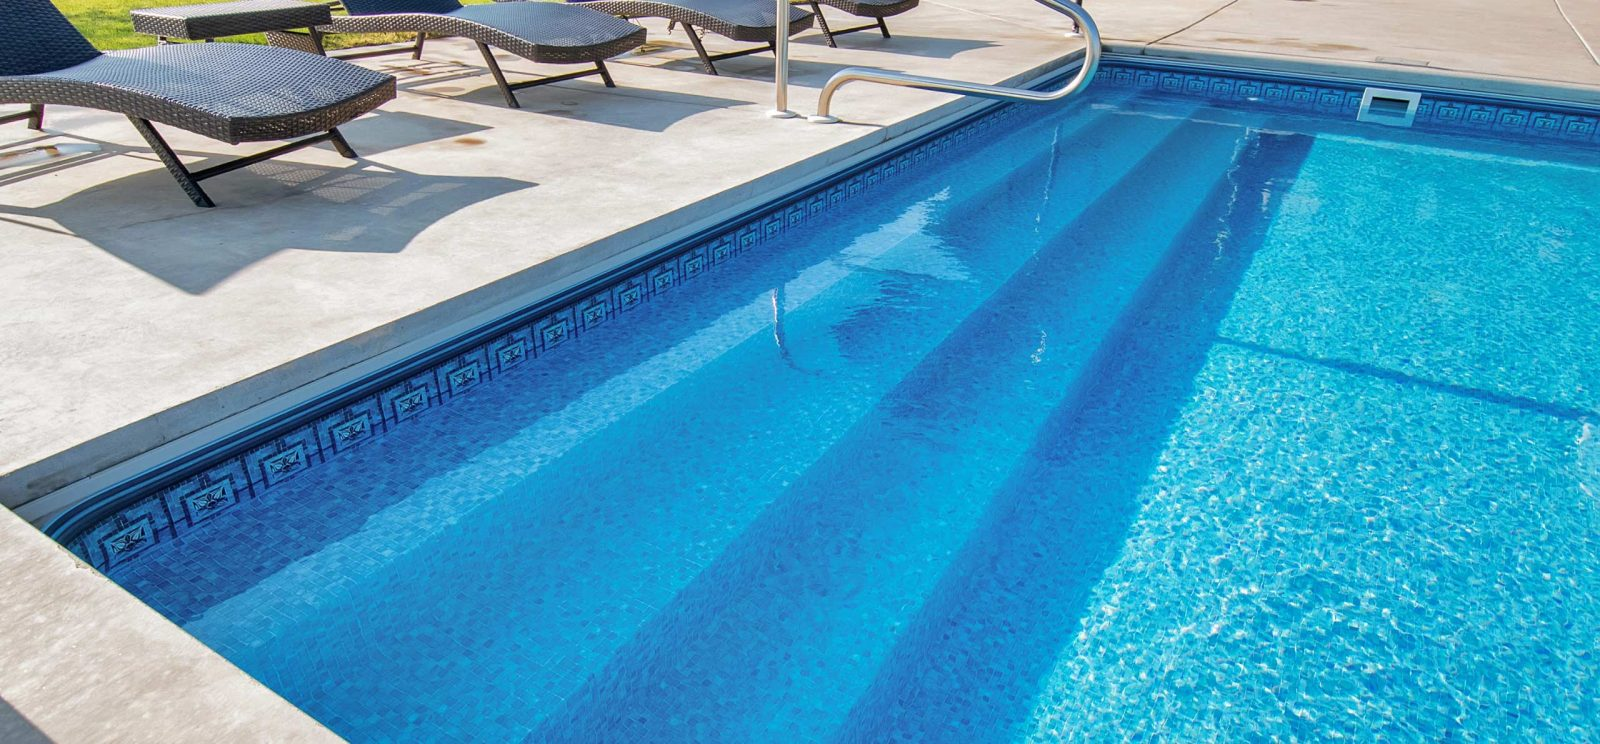 Make your pool look brand new with swimming pool tiles